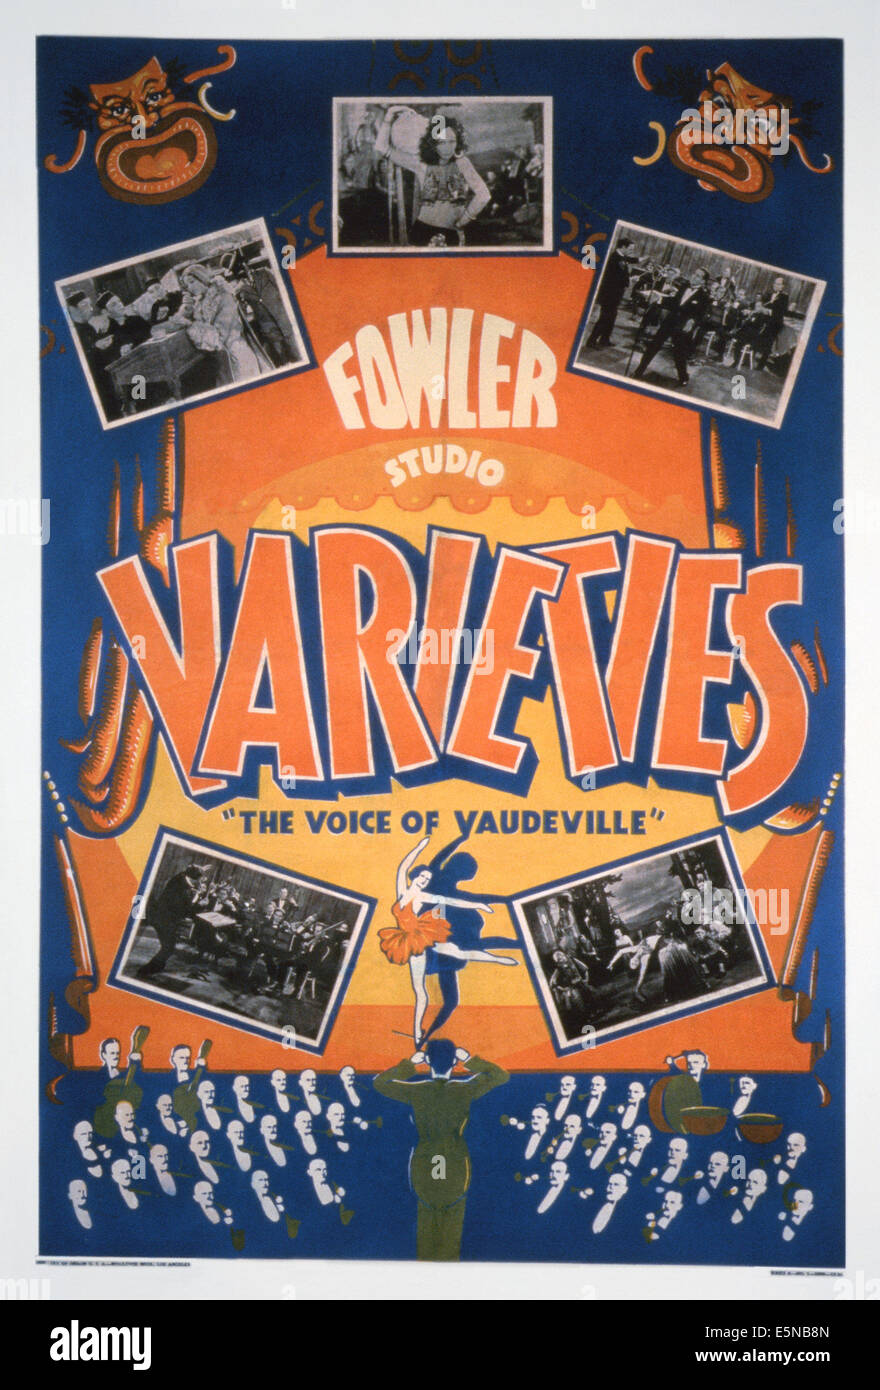 FOWLER STUDIO VARIETIES: THE VOICE OF VAUDEVILLE, US poster art, ca. 1930s - Stock Image